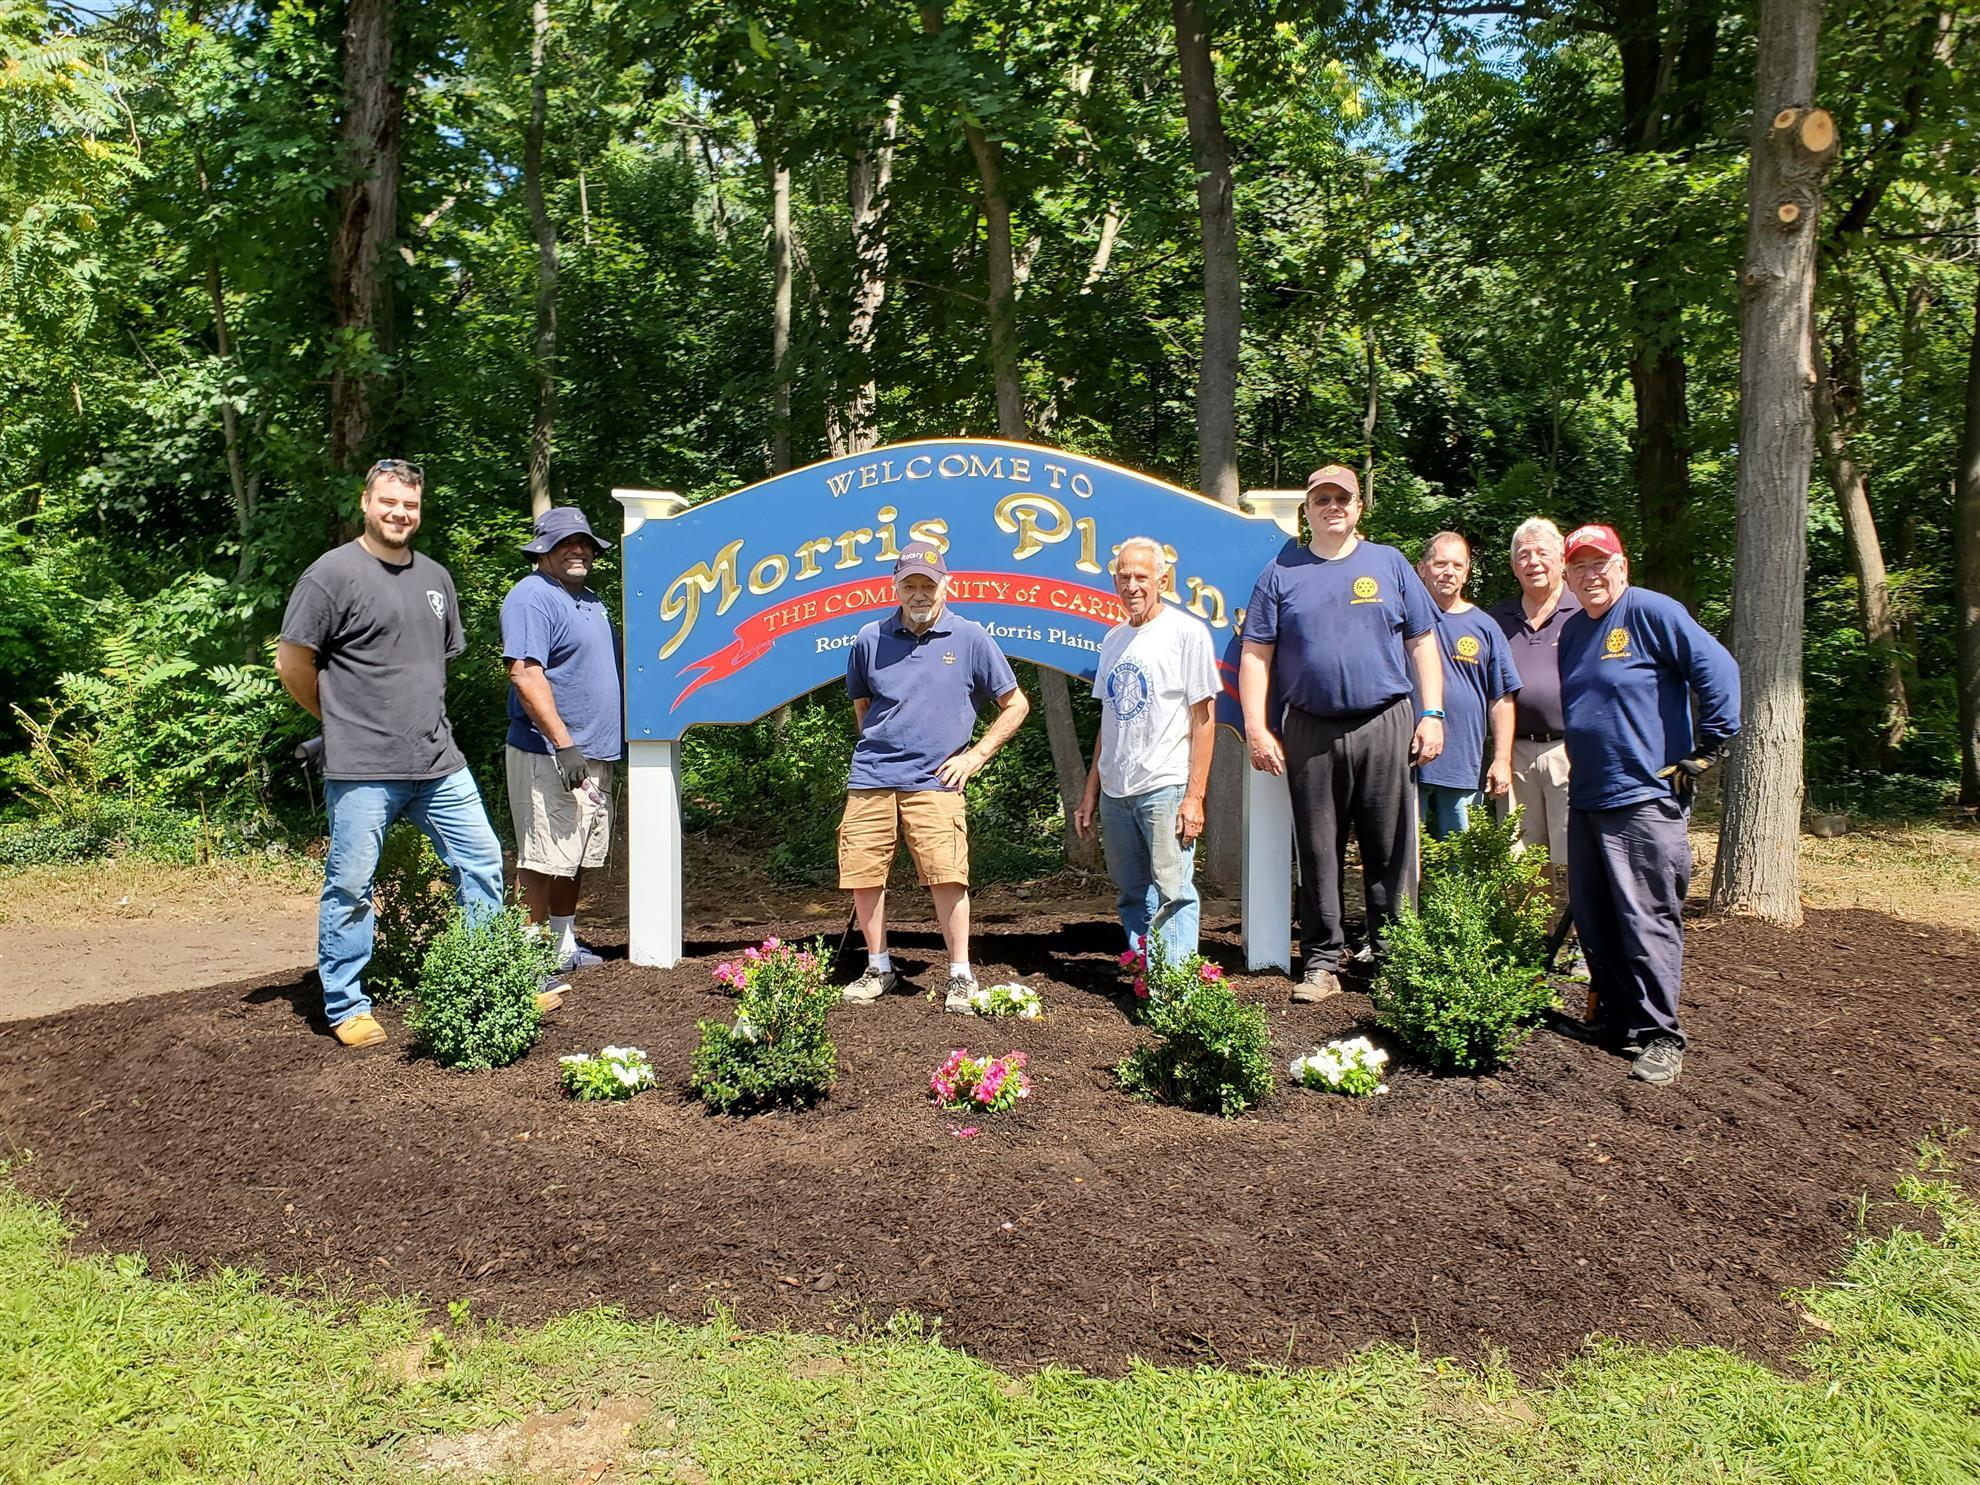 Thirteen Morris Plains Rotarians installed a Welcome to Morris Plains sign and landscaped the corner ofMalapardis Road and Johnson Road.